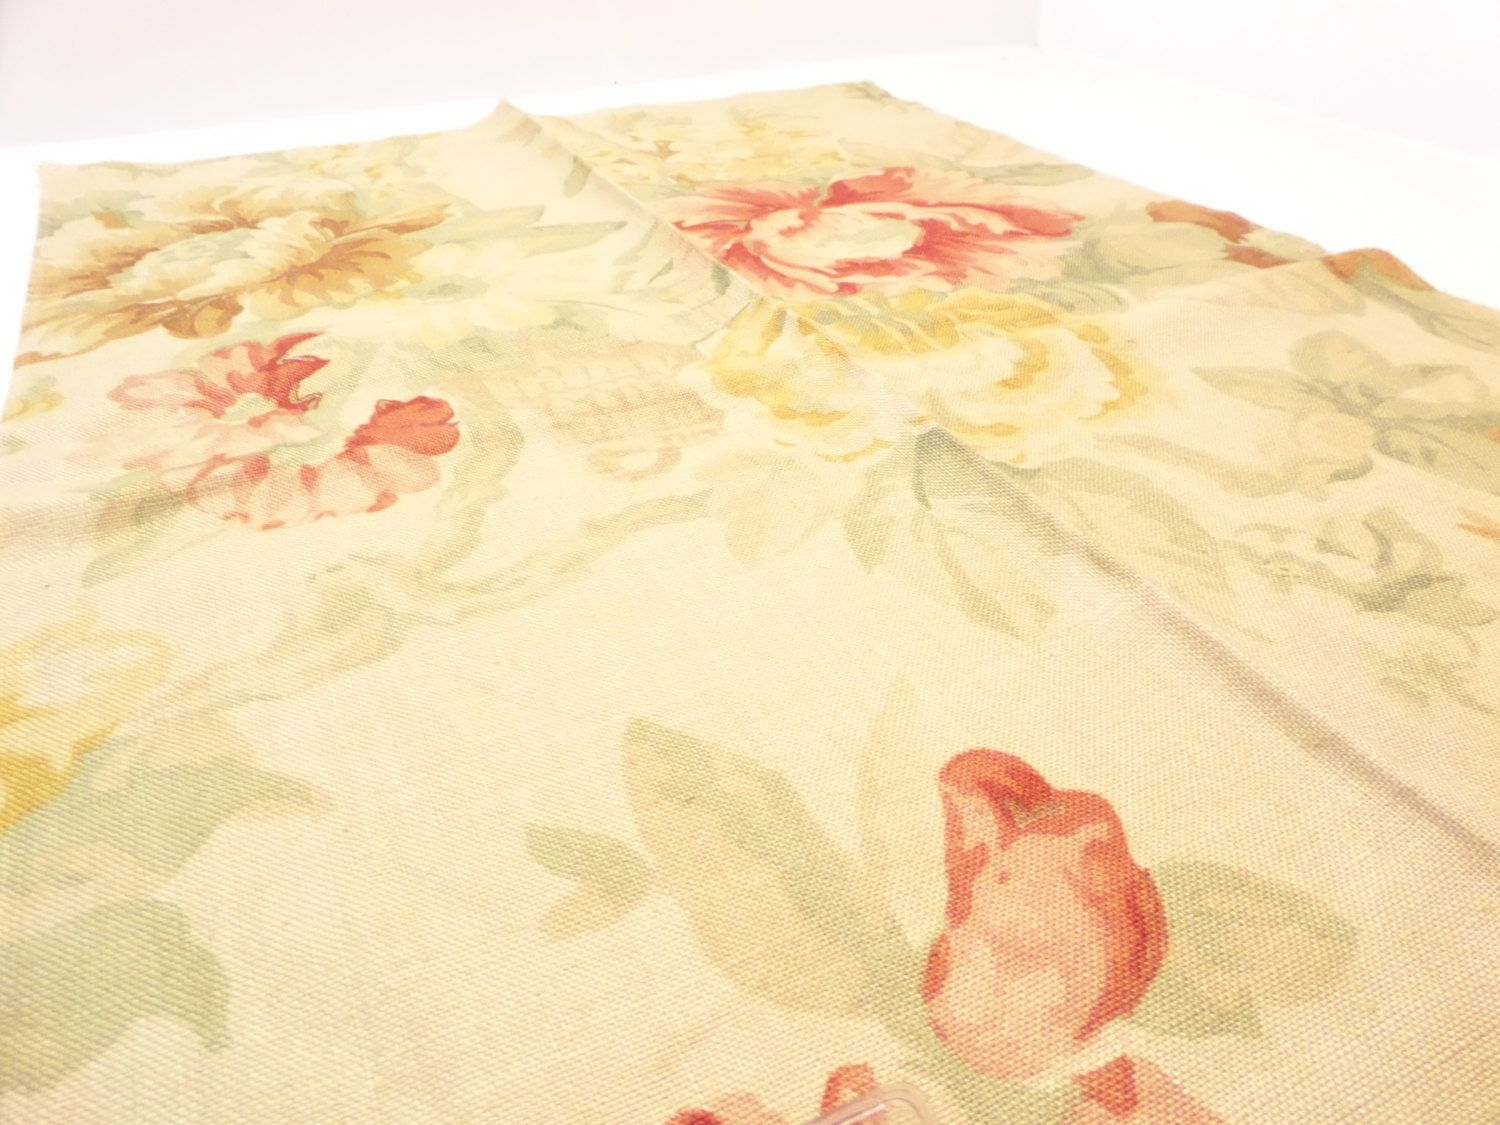 """Floral Fabric Mulberry Fabrics 25"""" x 18"""" Tintagel Sand Red Linen Nylon + Free Samples by Fabricsamples10 on Etsy"""